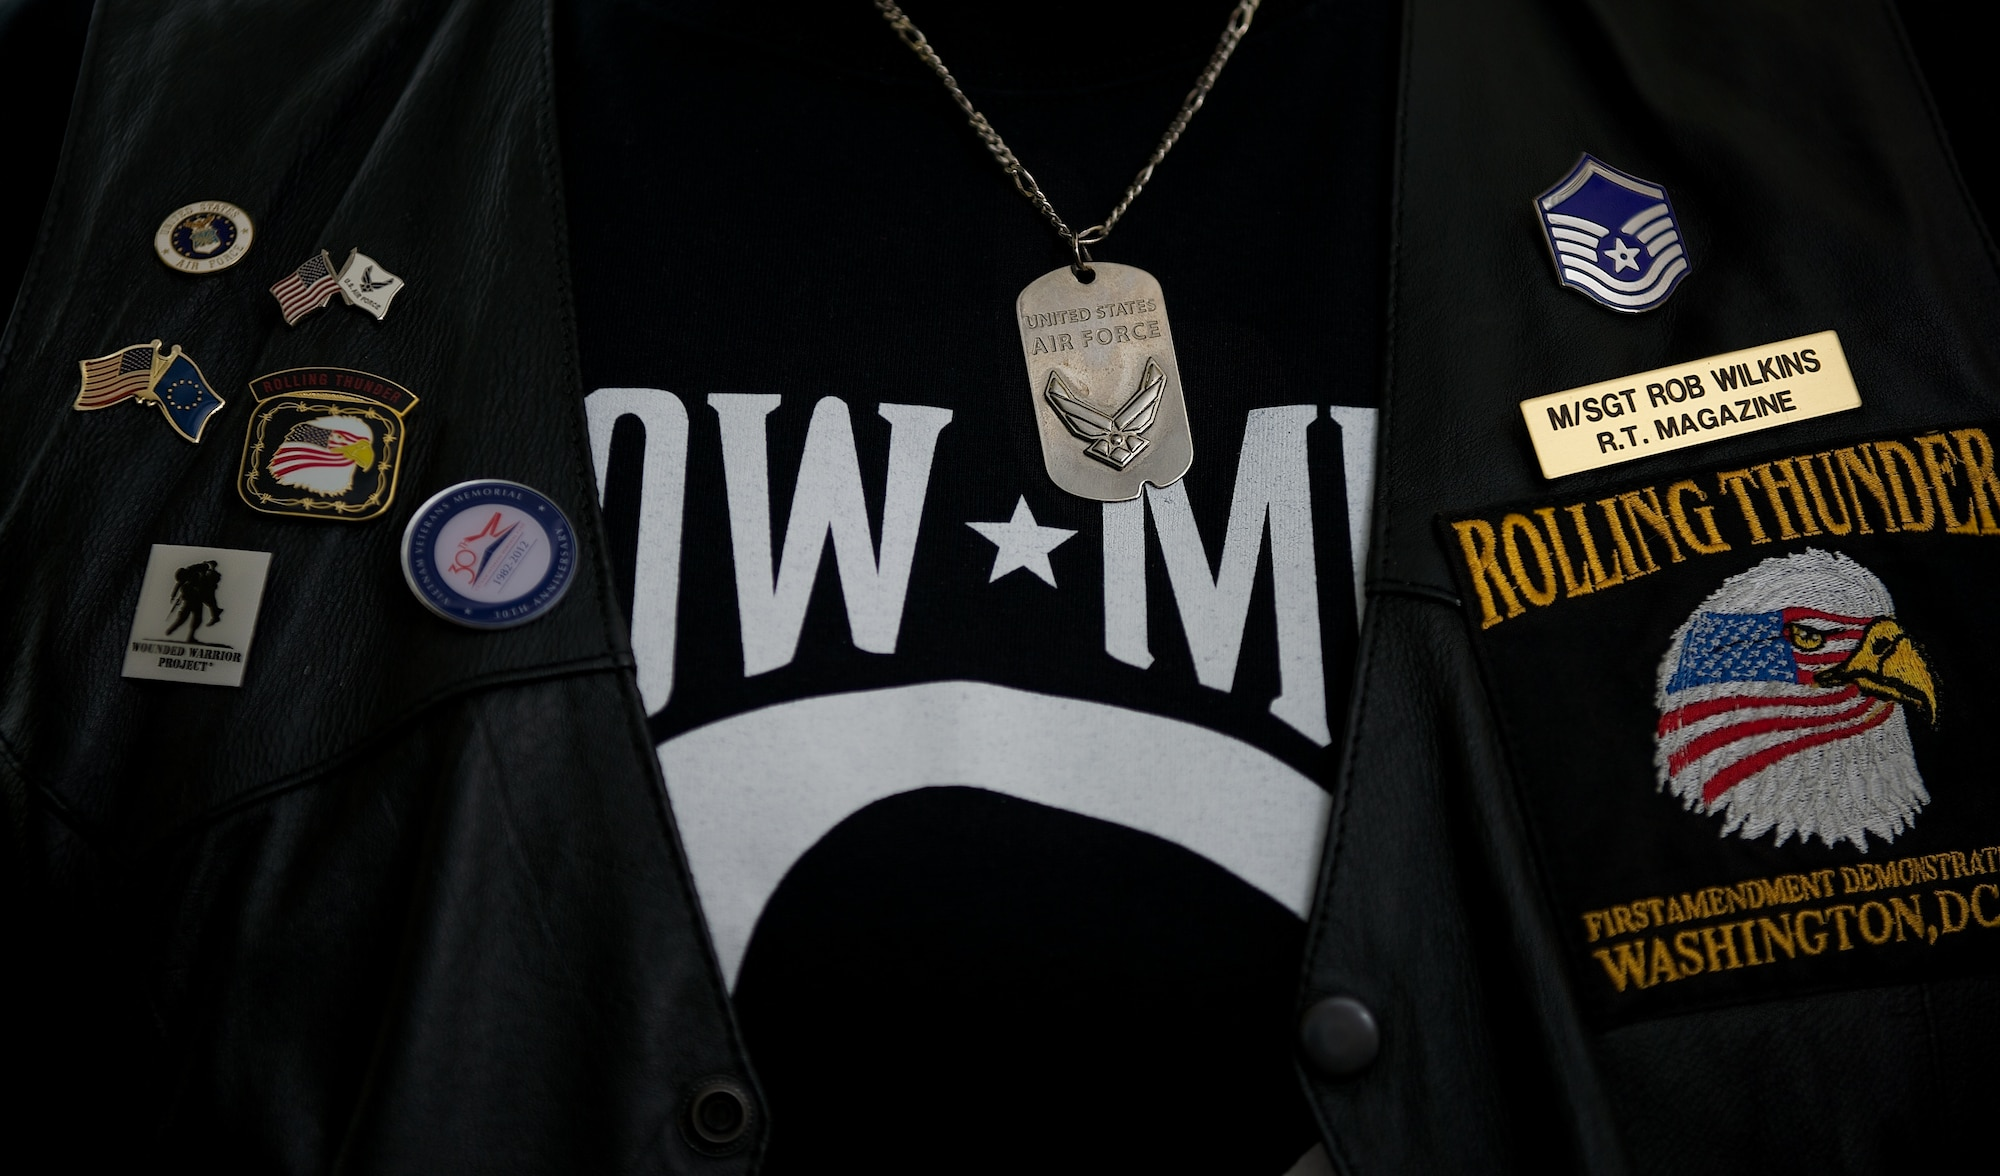 Rob Wilkins displays pins and his former Air Force rank on his Rolling Thunder motorcycle vest May 15, 2014, at his office in Leesburg, Va. Wilkins is part of the board of directors of Rolling Thunder, the annual Memorial Day motorcycle rally through Washington, D.C. (U.S. Air Force photo/Senior Airman Alexander W. Riedel)